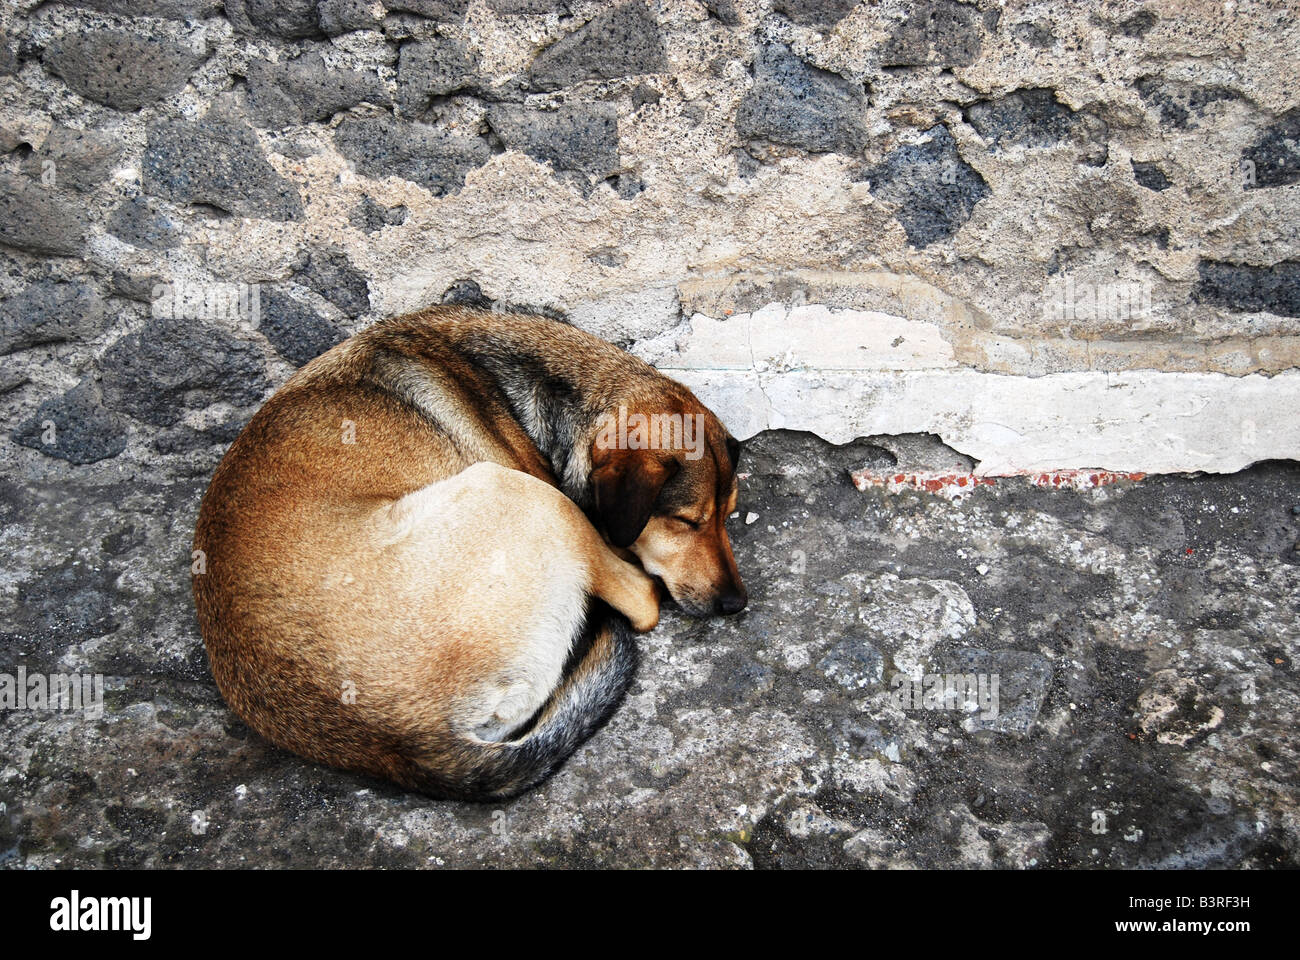 Sleeping dog curled up next to rock wall - Stock Image